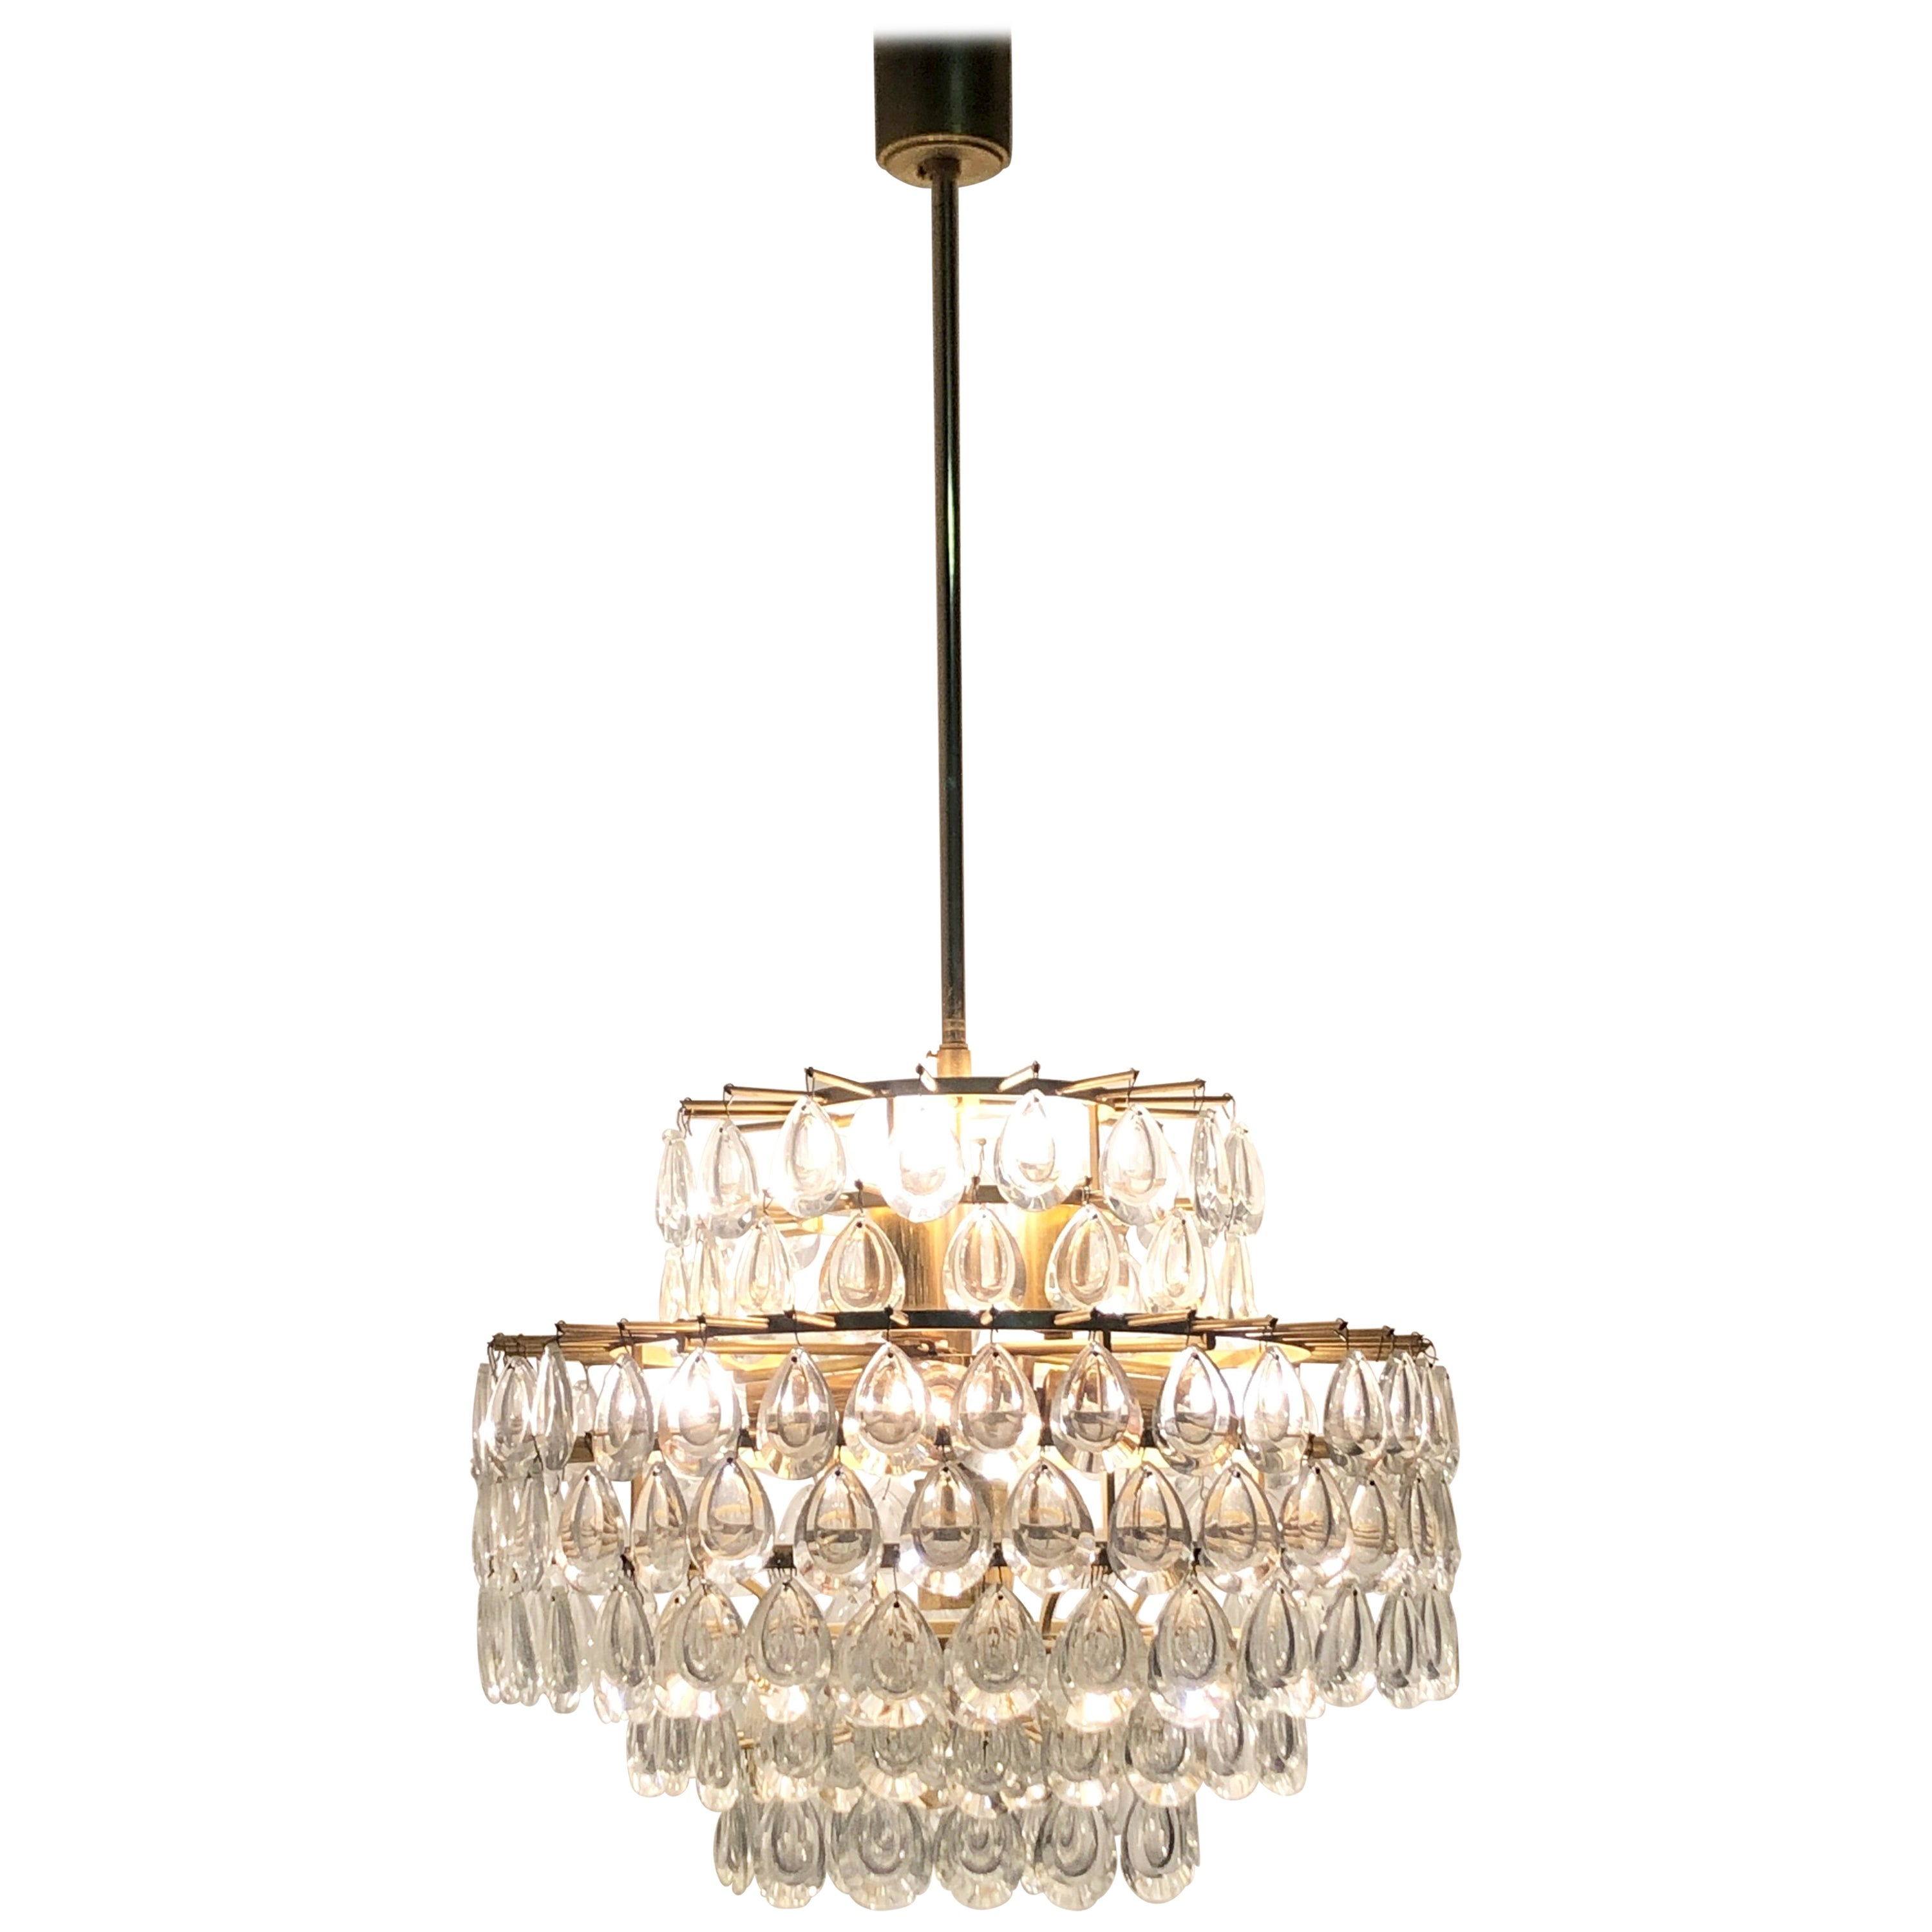 Seven-Tiered Chandelier by Palwa, Git Brass and Lenses Glass, circa 1960s